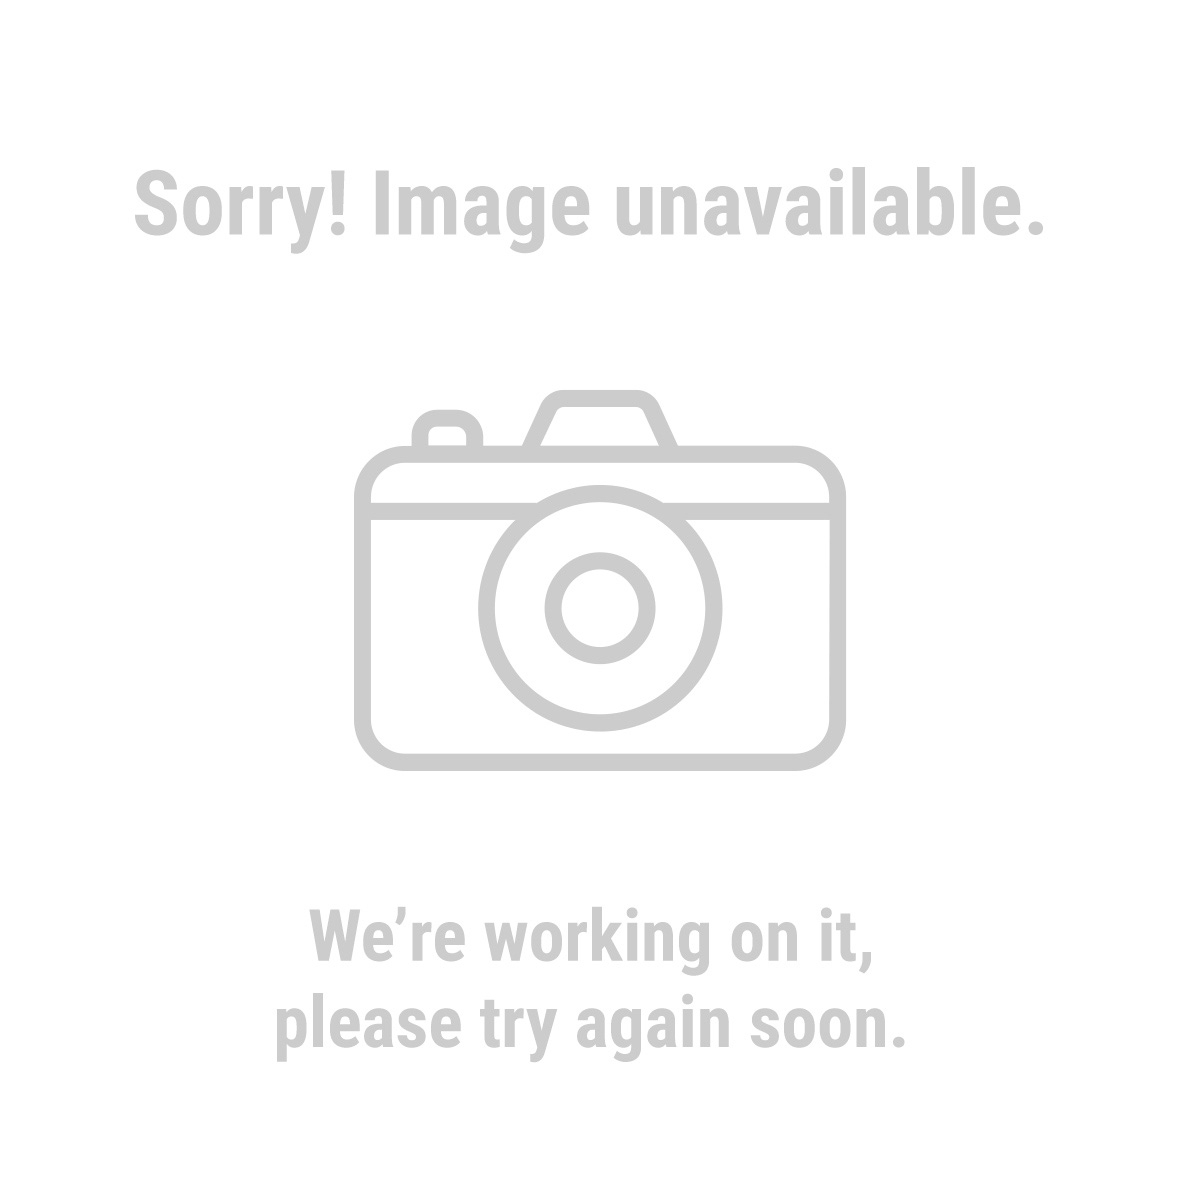 Inside Track Club 404 1-Year Inside Track Club Membership RENEWAL